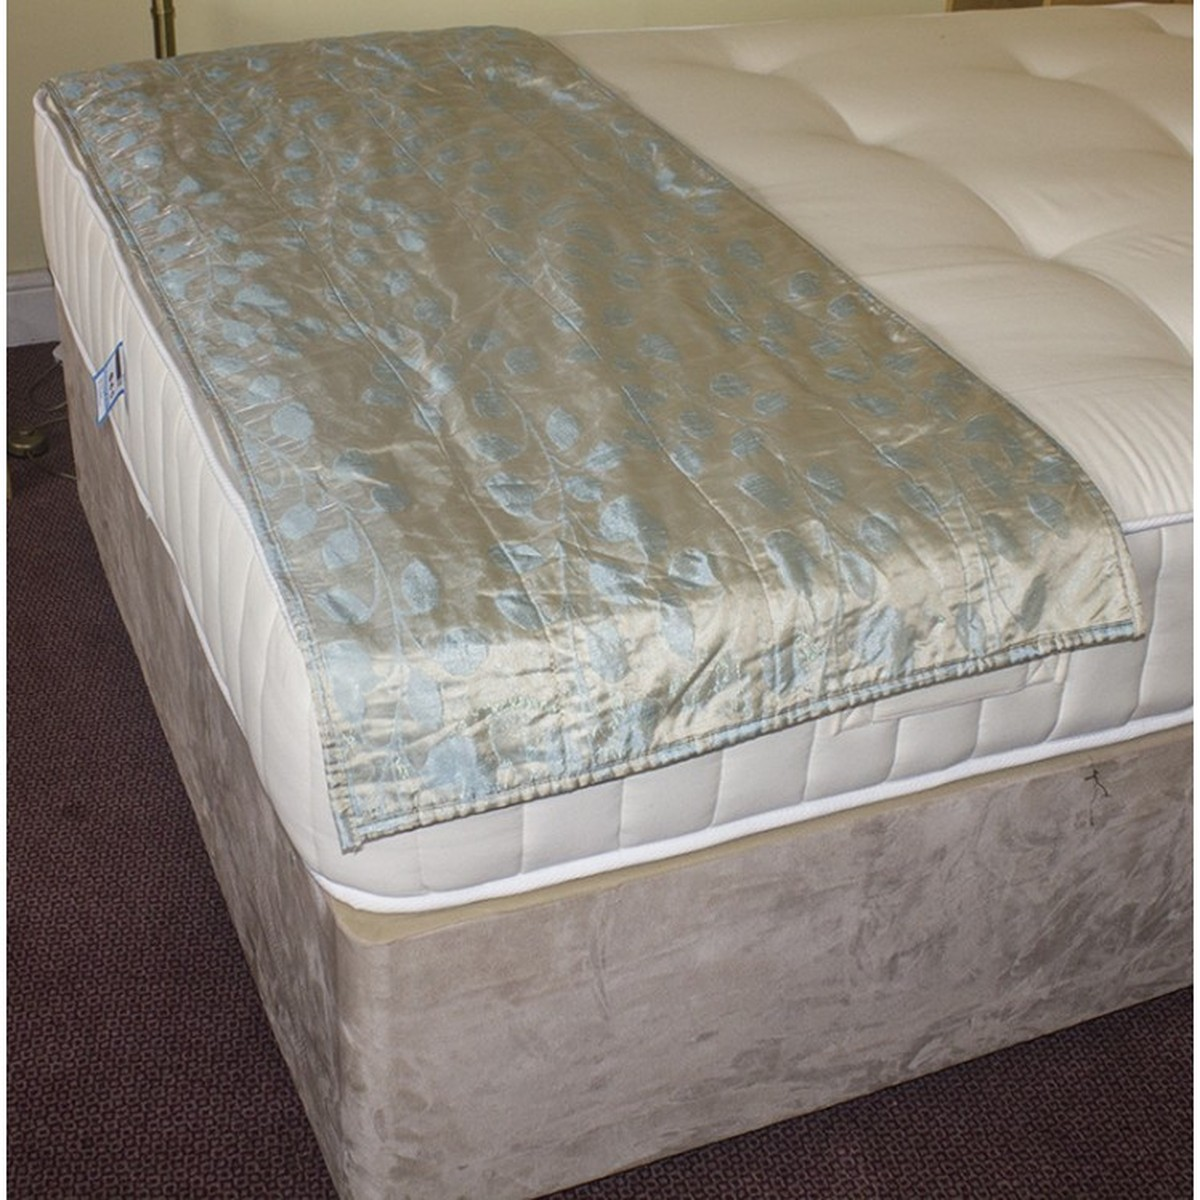 Secondhand Hotel Furniture Beds 300x Bed Foot Throws